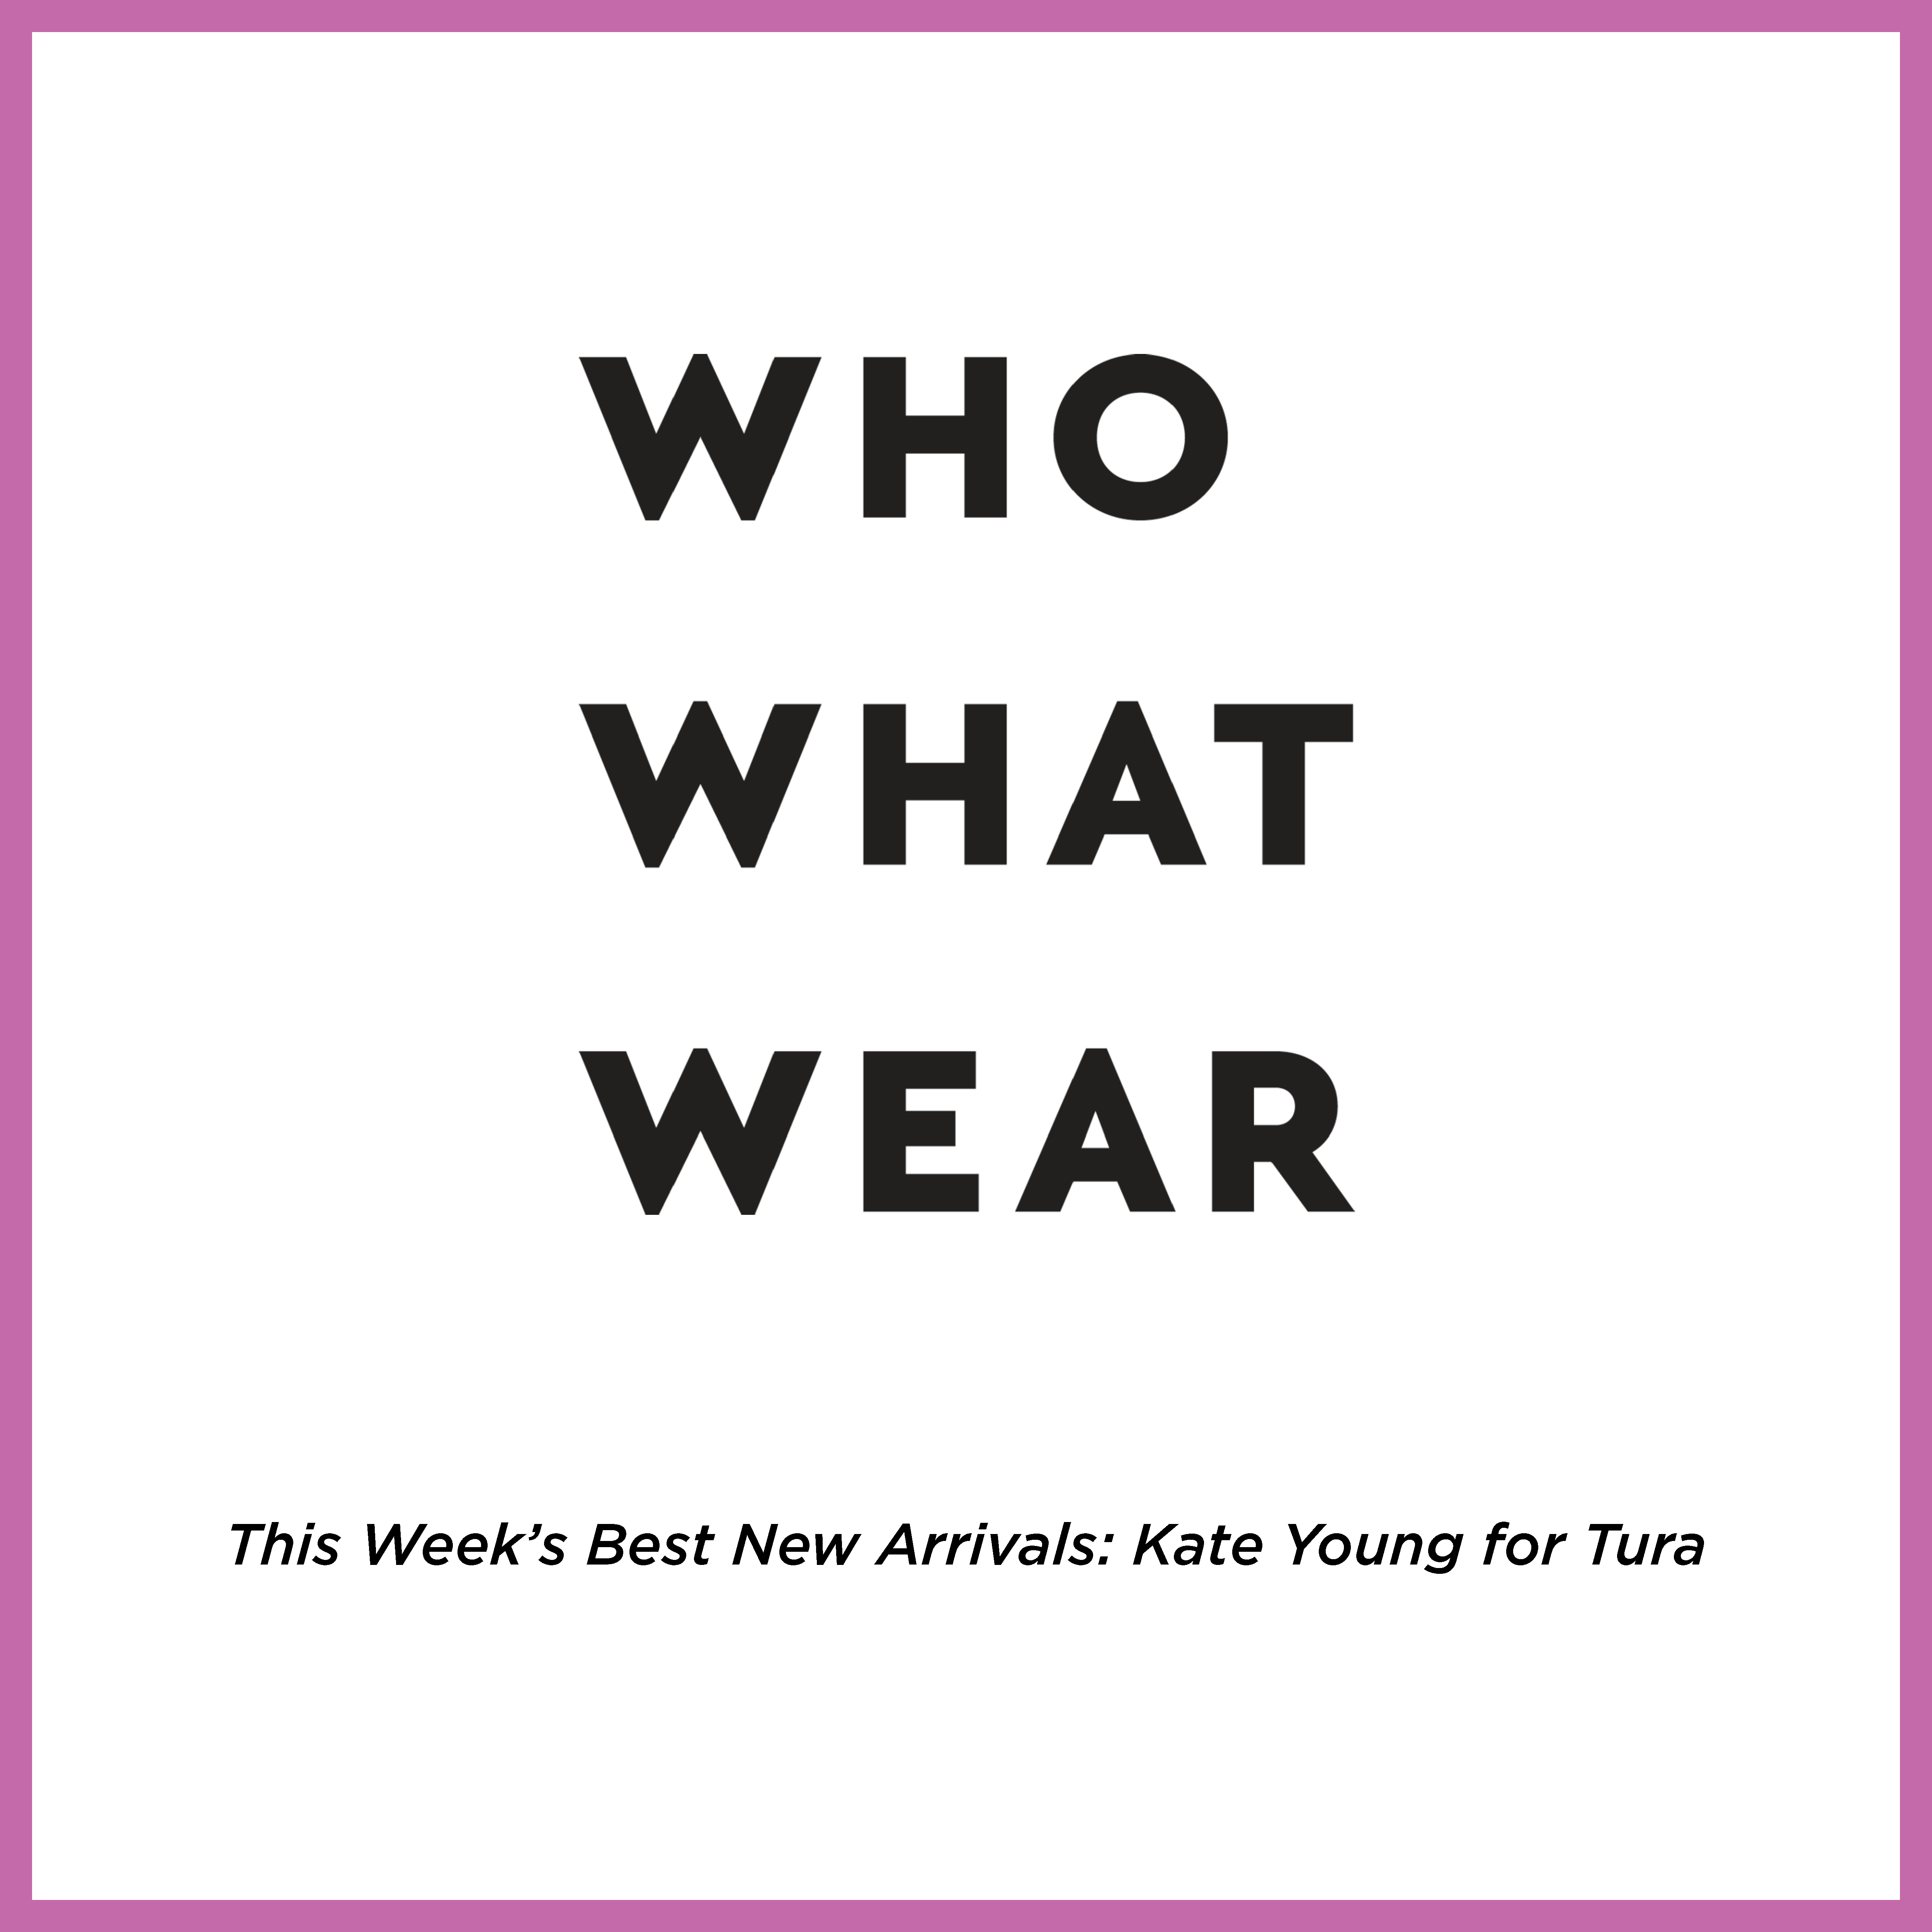 KATE YOUNG FOR TURA FEATURED IN WHO WHAT WEAR: SHOP 22 OF THIS WEEK'S BEST NEW ARRIVALS